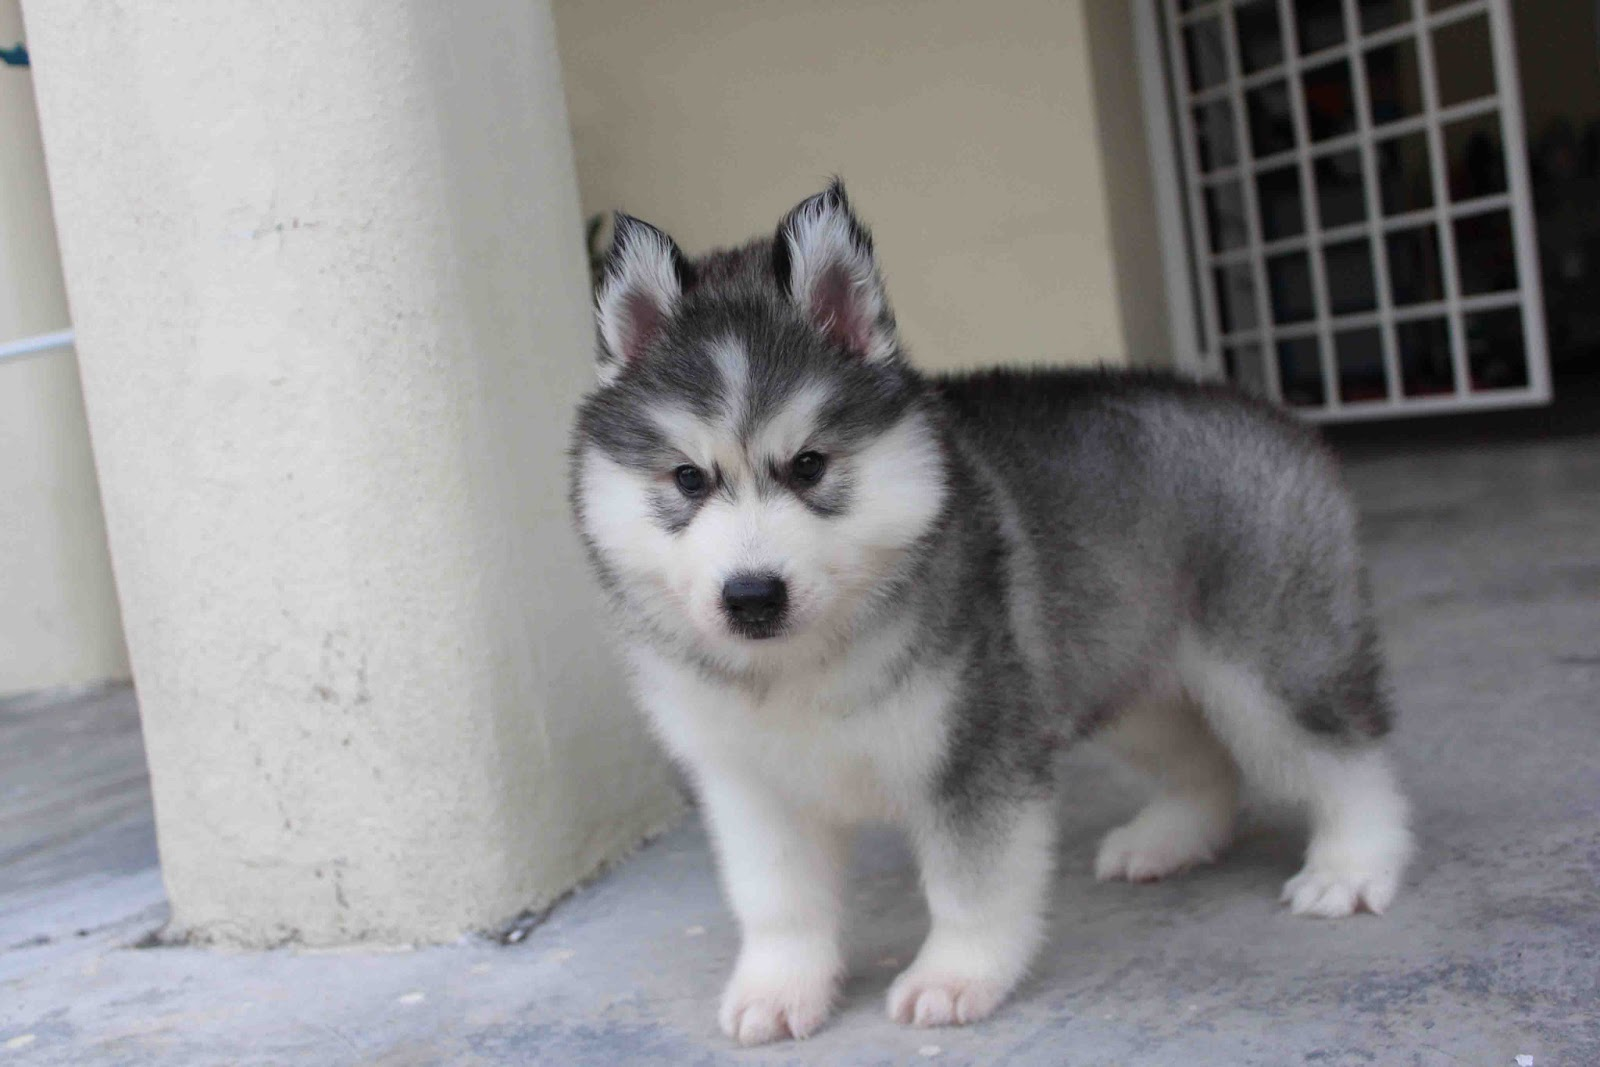 Husky Price Is Siberian Husky Puppy Price In Malaysia Any Good 16 Ways